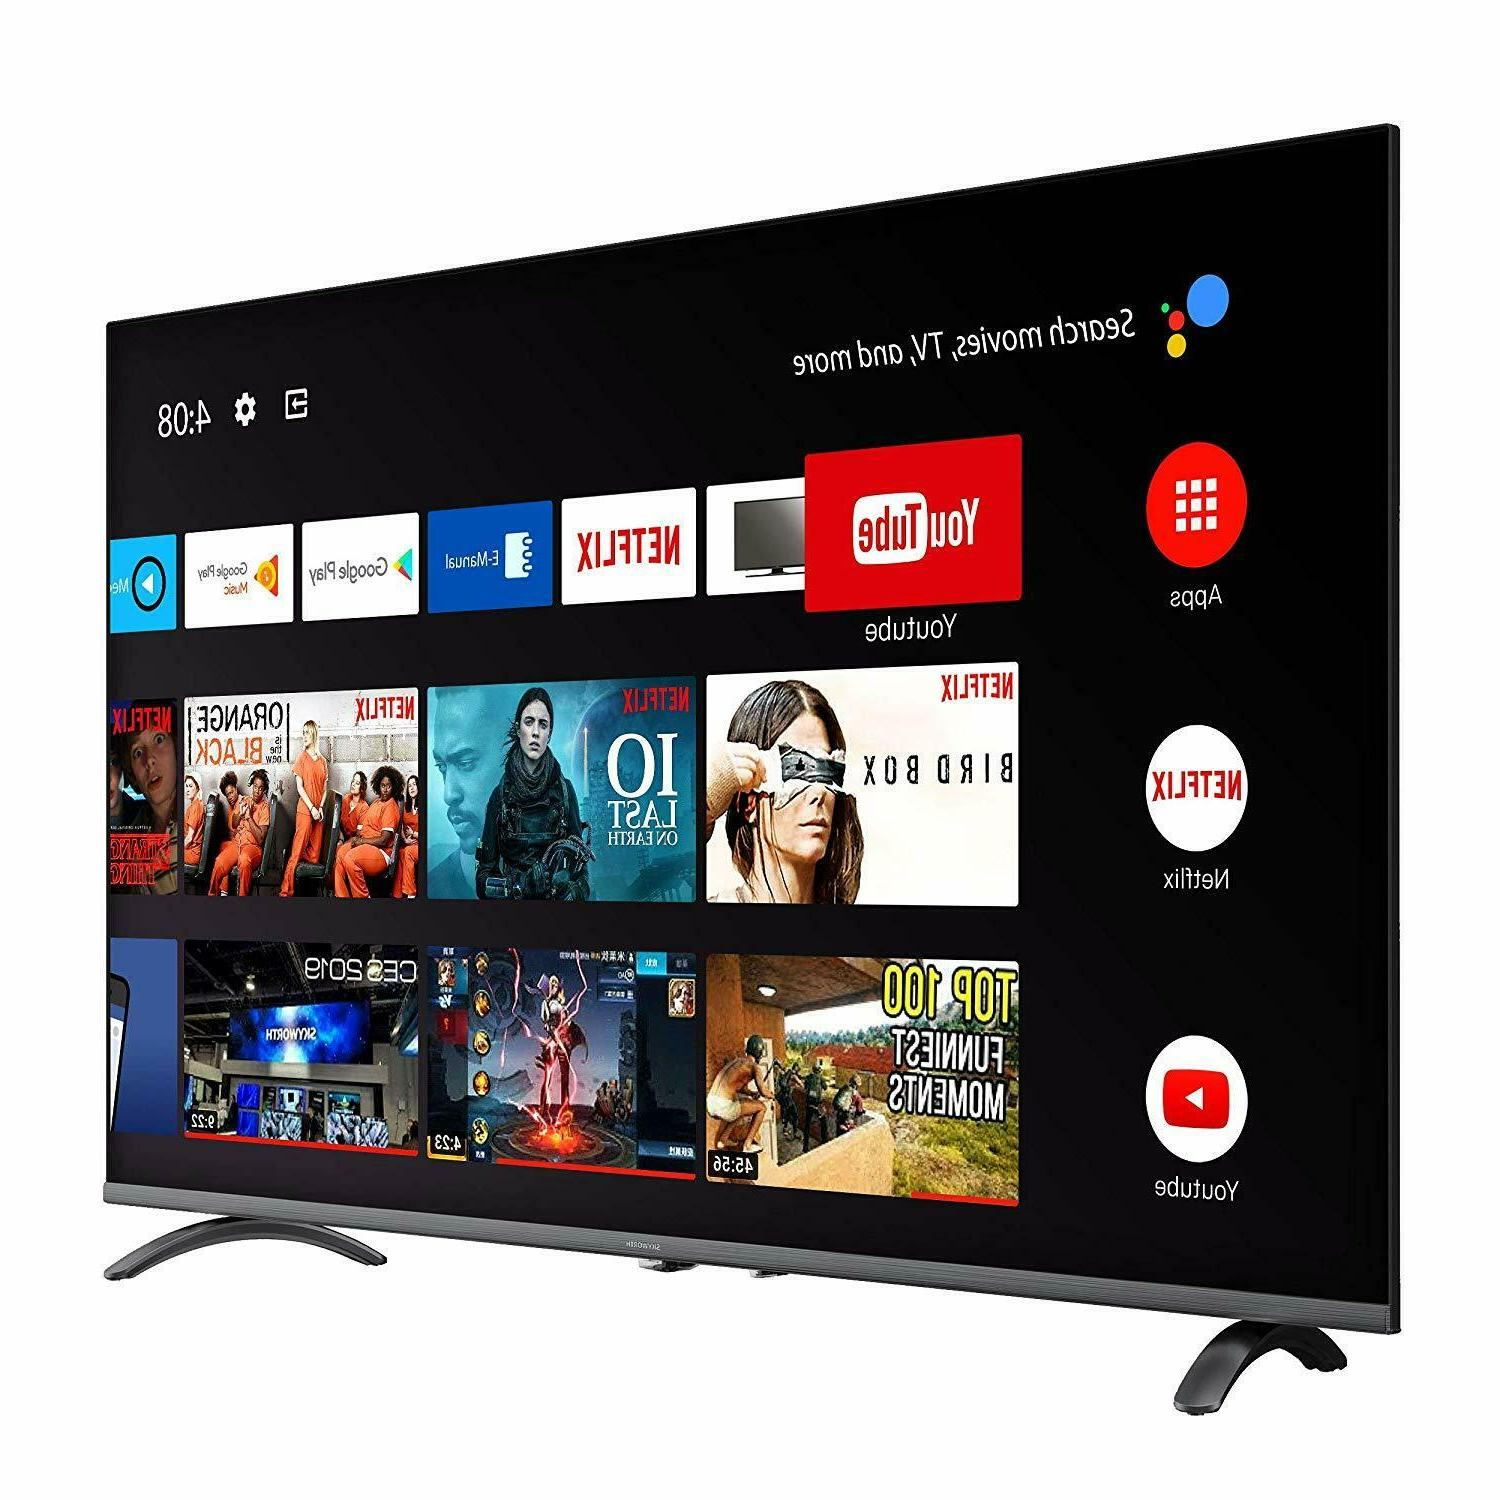 4K UHD HDR A53 Android Smart TV